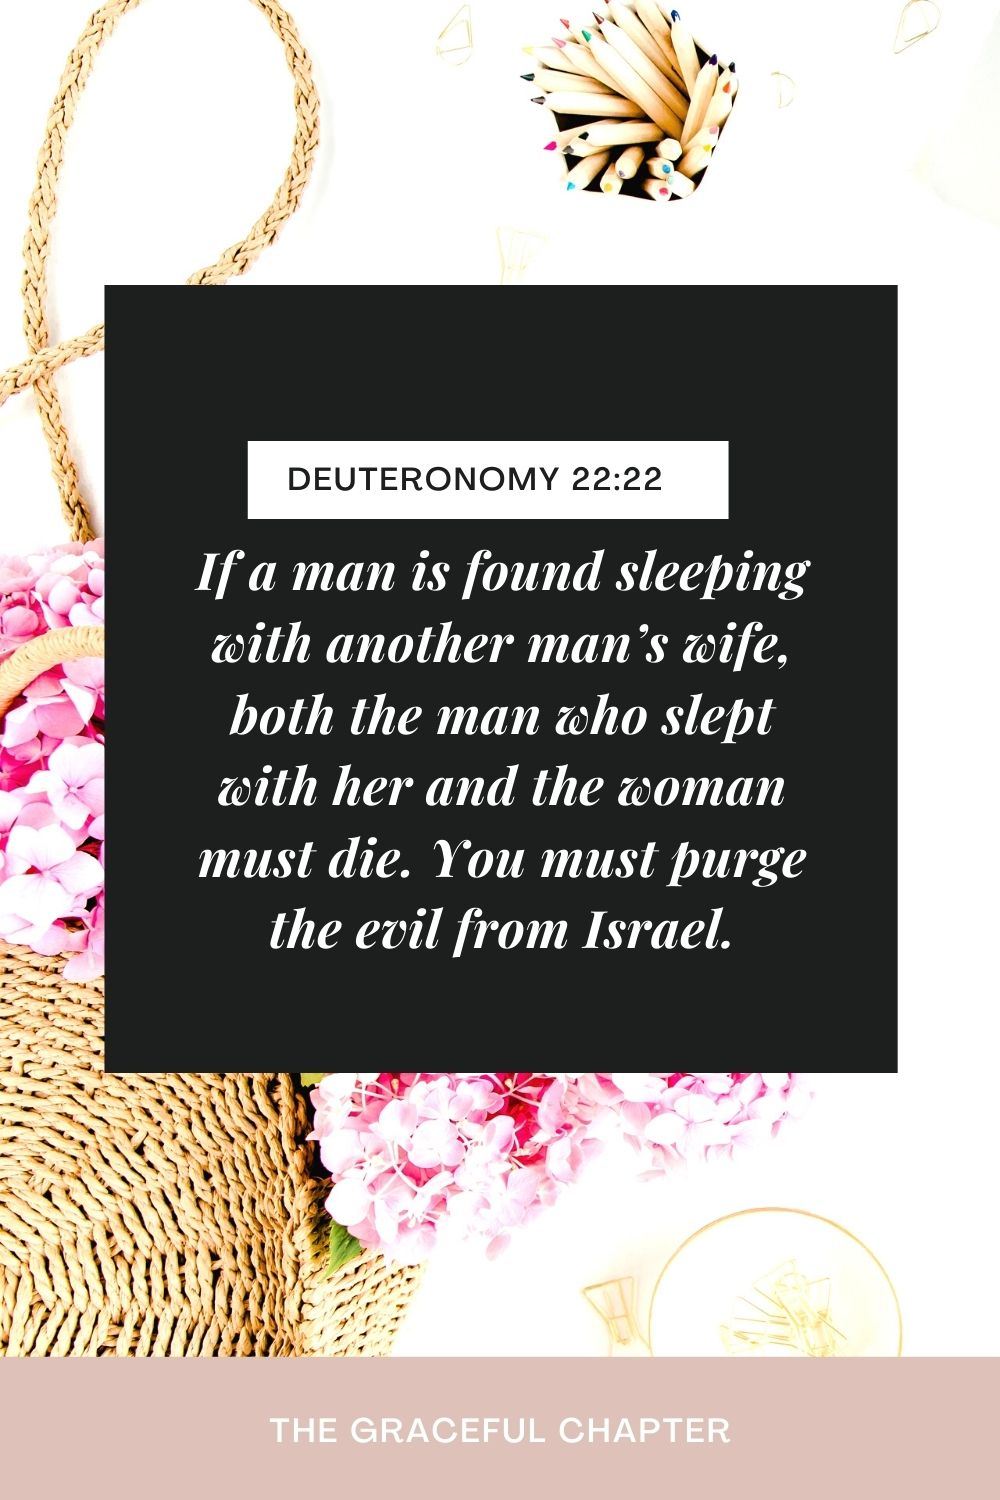 If a man is found sleeping with another man's wife, both the man who slept with her and the woman must die. You must purge the evil from Israel. Deuteronomy 22:22